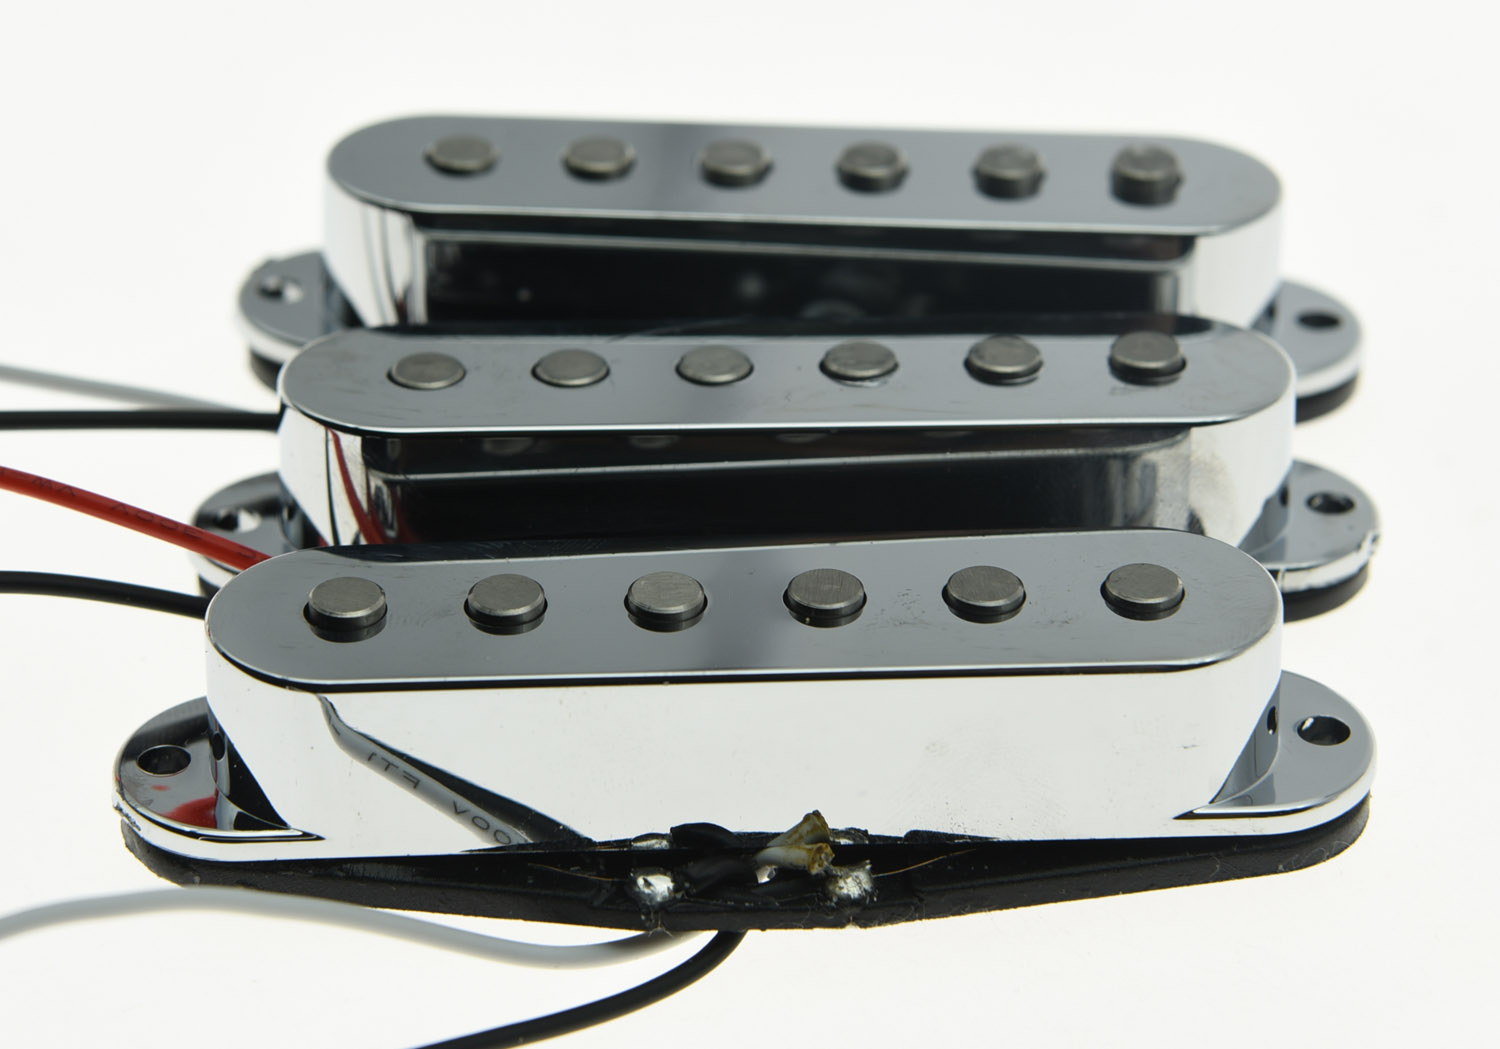 KAISH 3x N/M/B Chrome Alnico 5 Single Coil Pickups High Output Sound Strat SSS Pickup kaish 3x silver mirror guitar single coil pickup surround ring for sized pickup